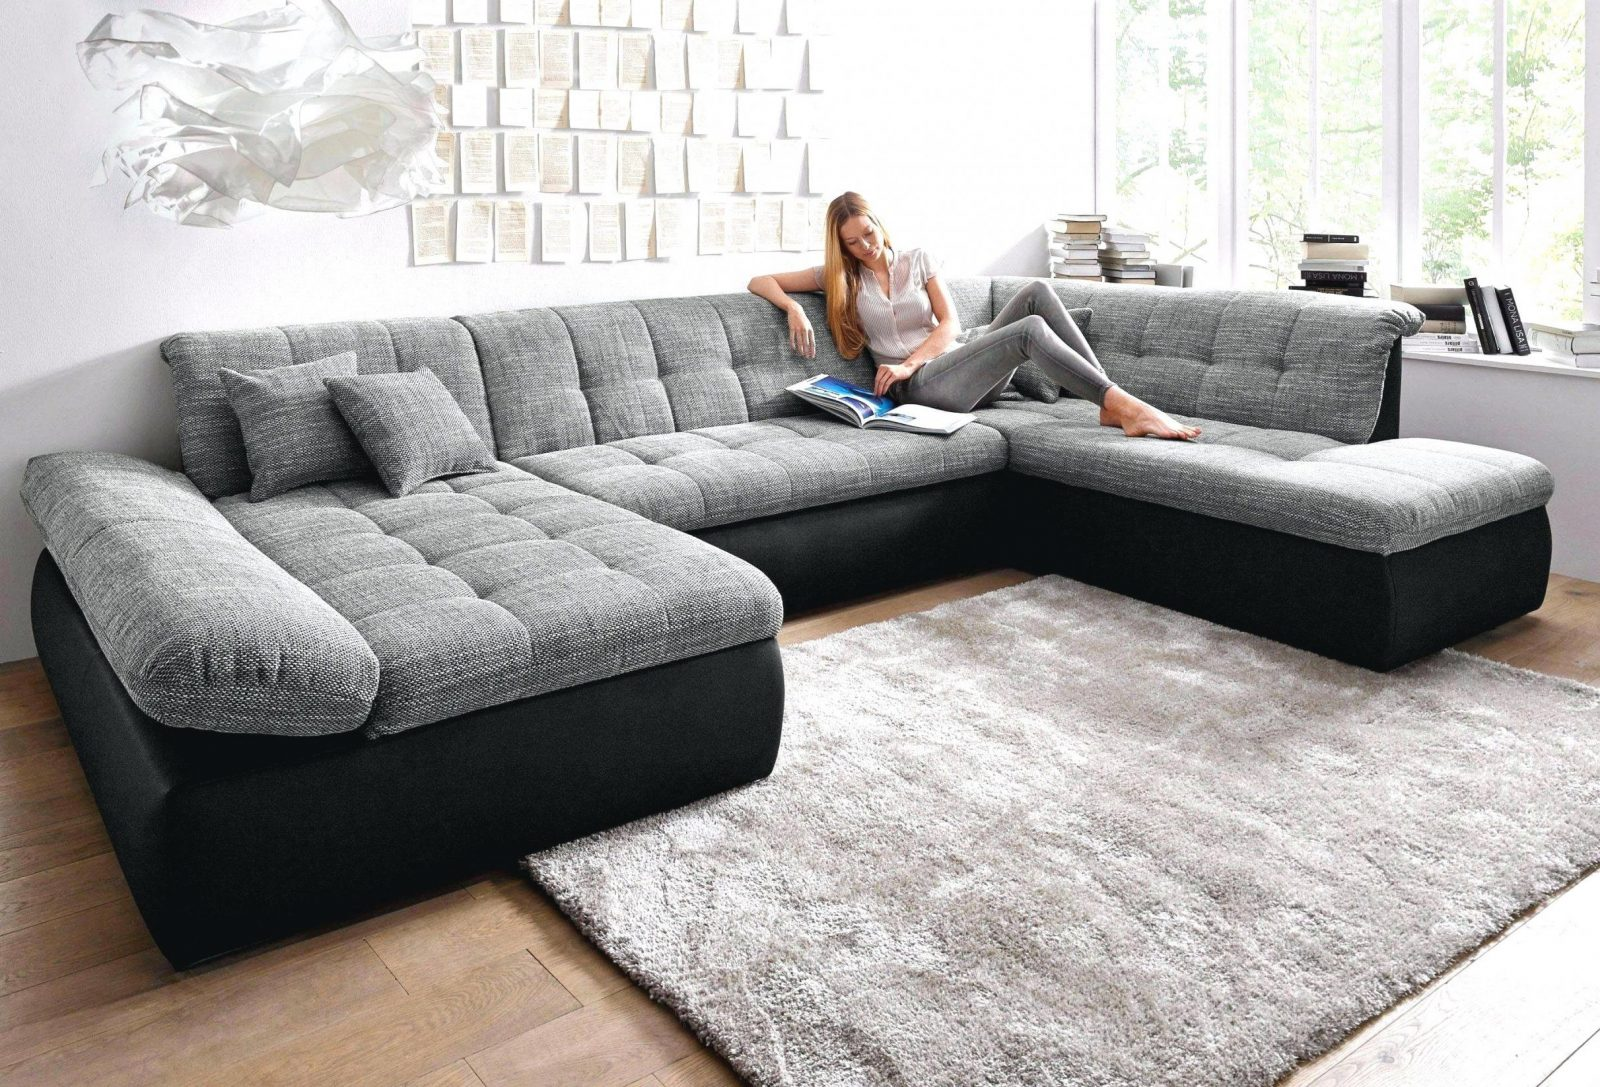 otto couch mit schlaffunktion haus design ideen. Black Bedroom Furniture Sets. Home Design Ideas